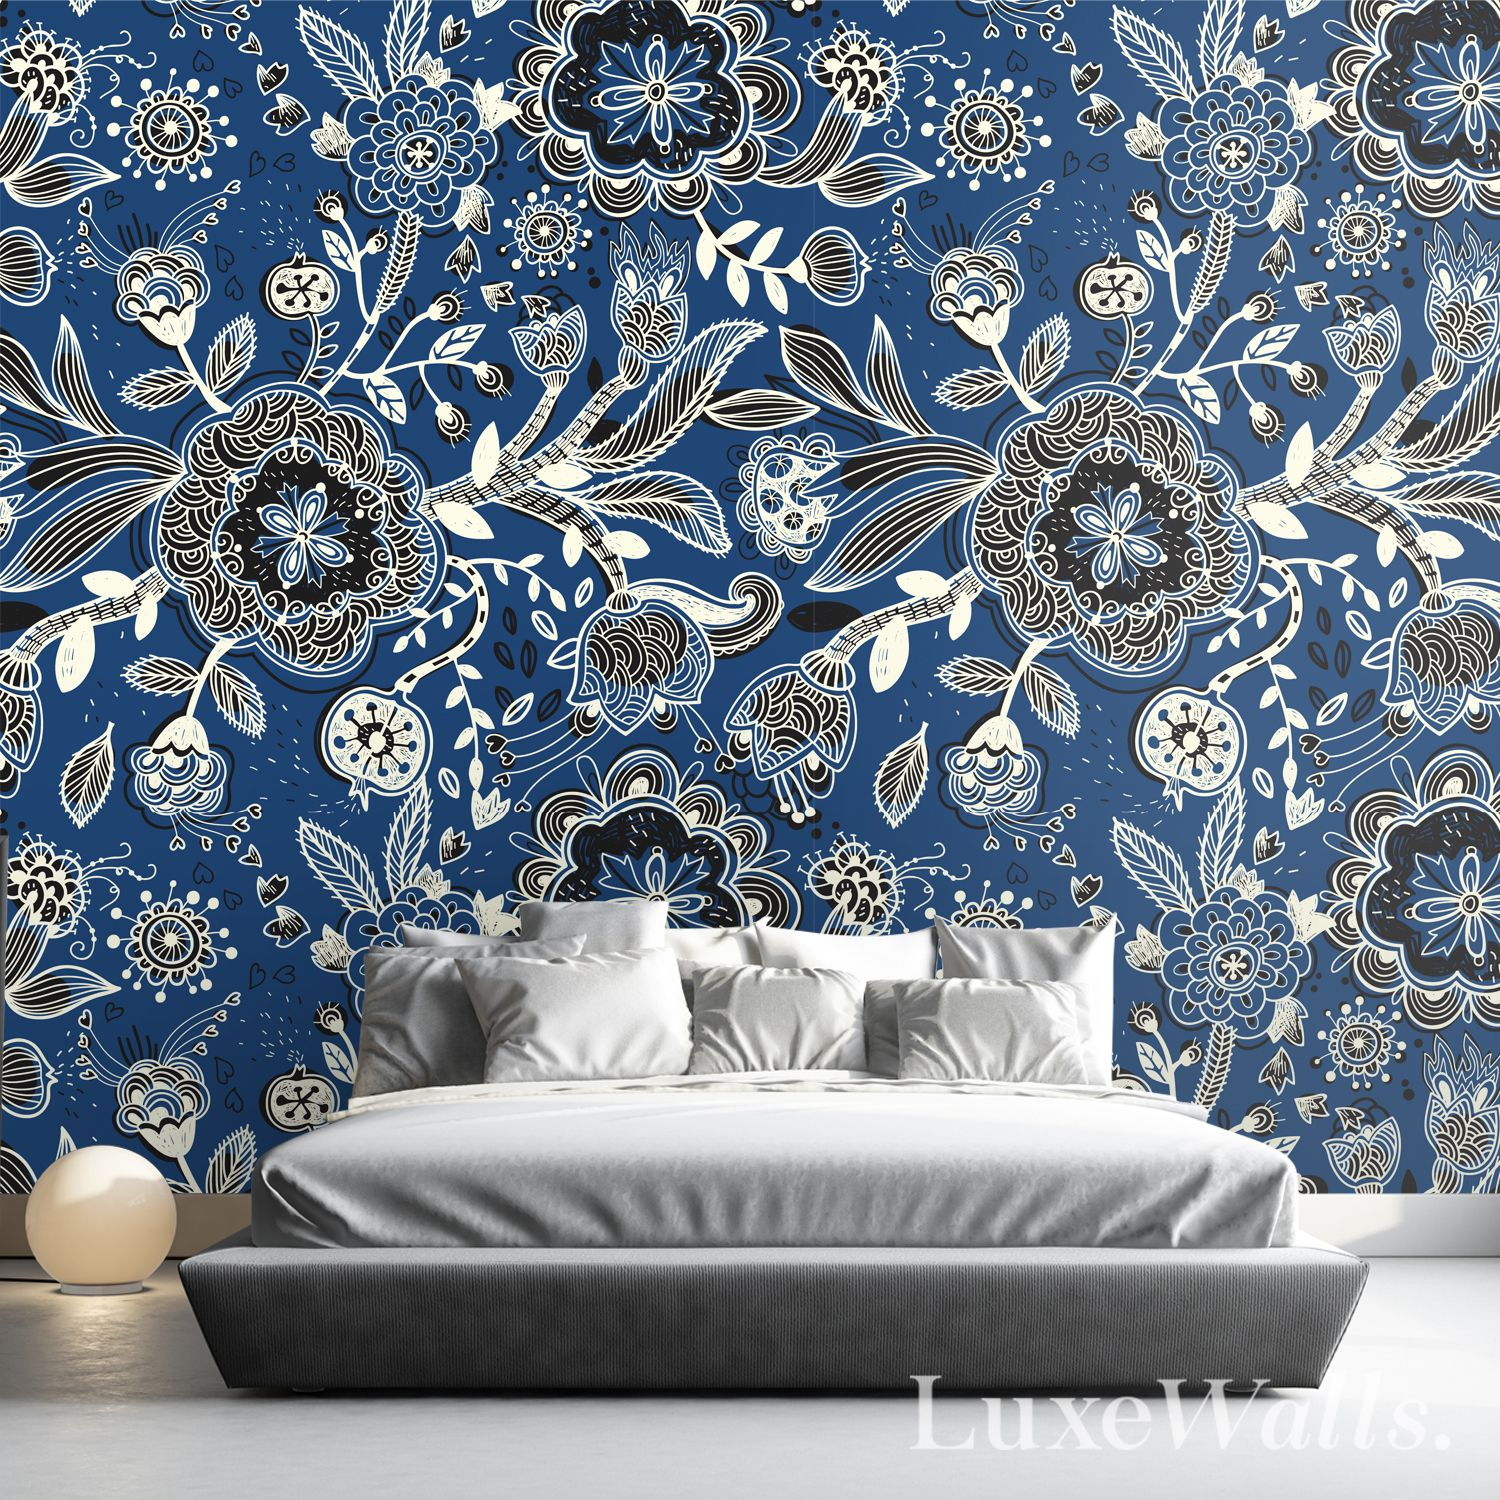 Midnight Blue Blue Wallpapers Blue Floral Wallpaper Stylish Wall Decor